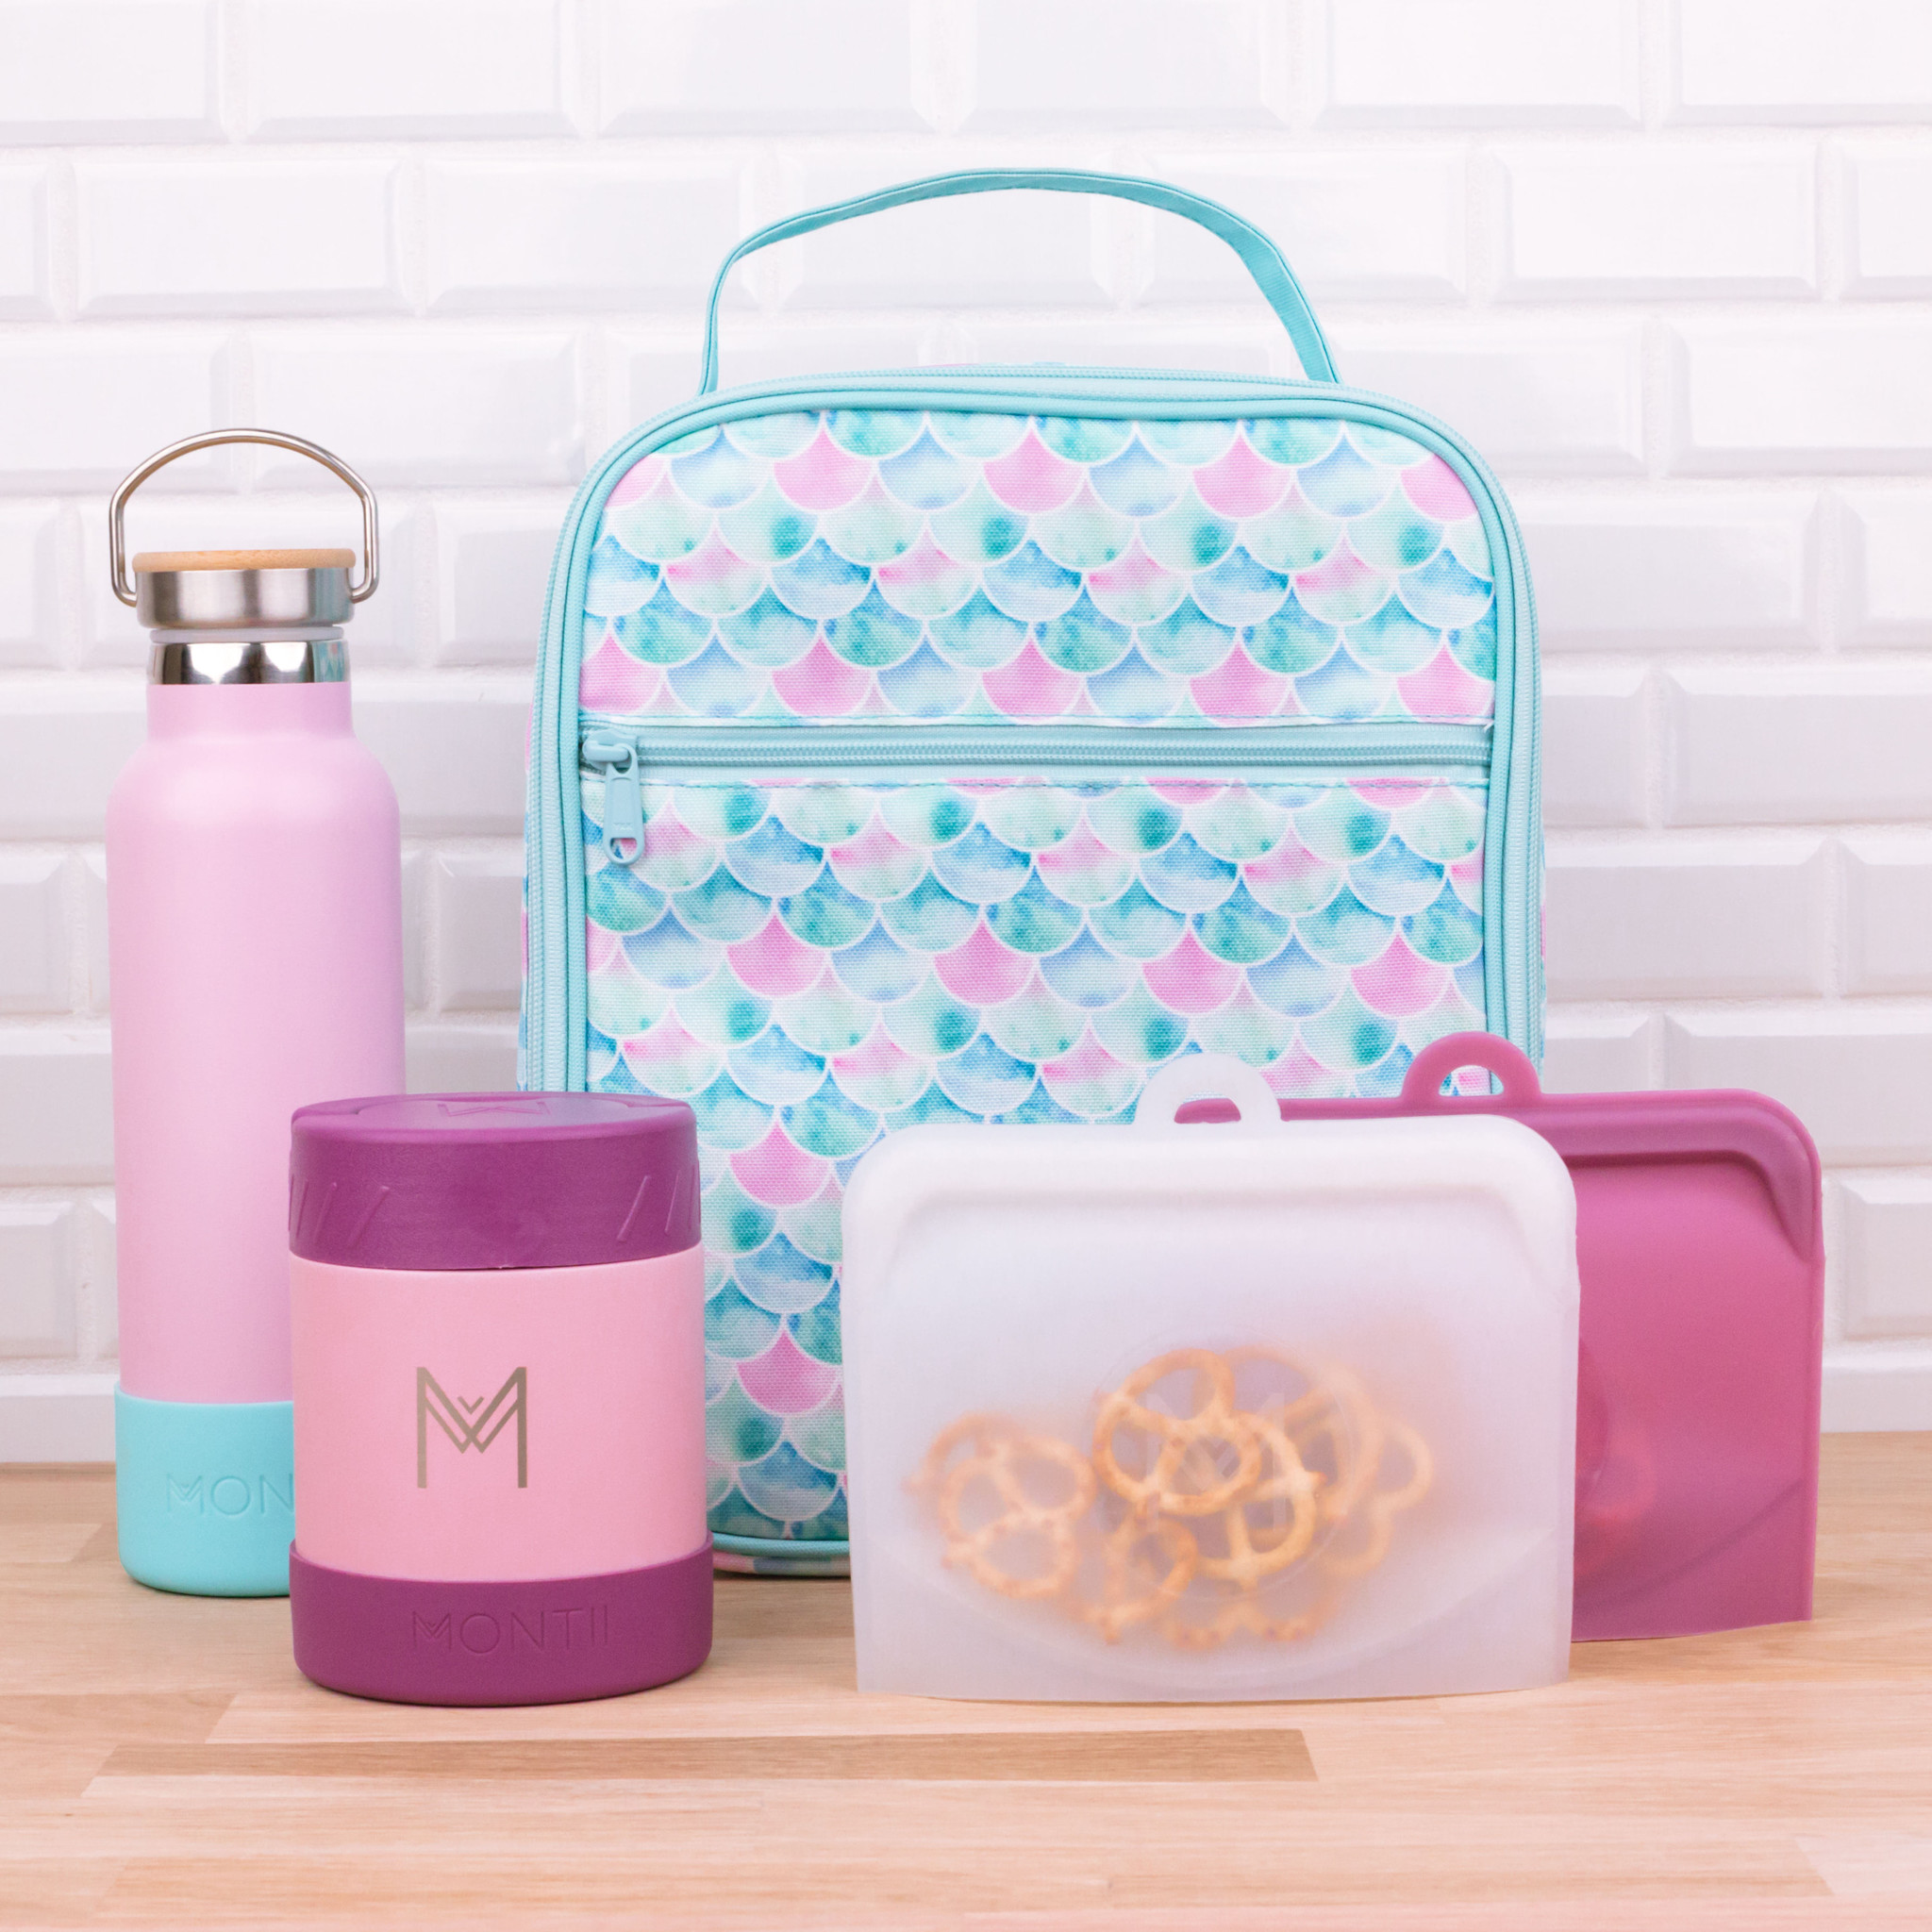 Montii insulated Lunch Bag - Meermaid-6